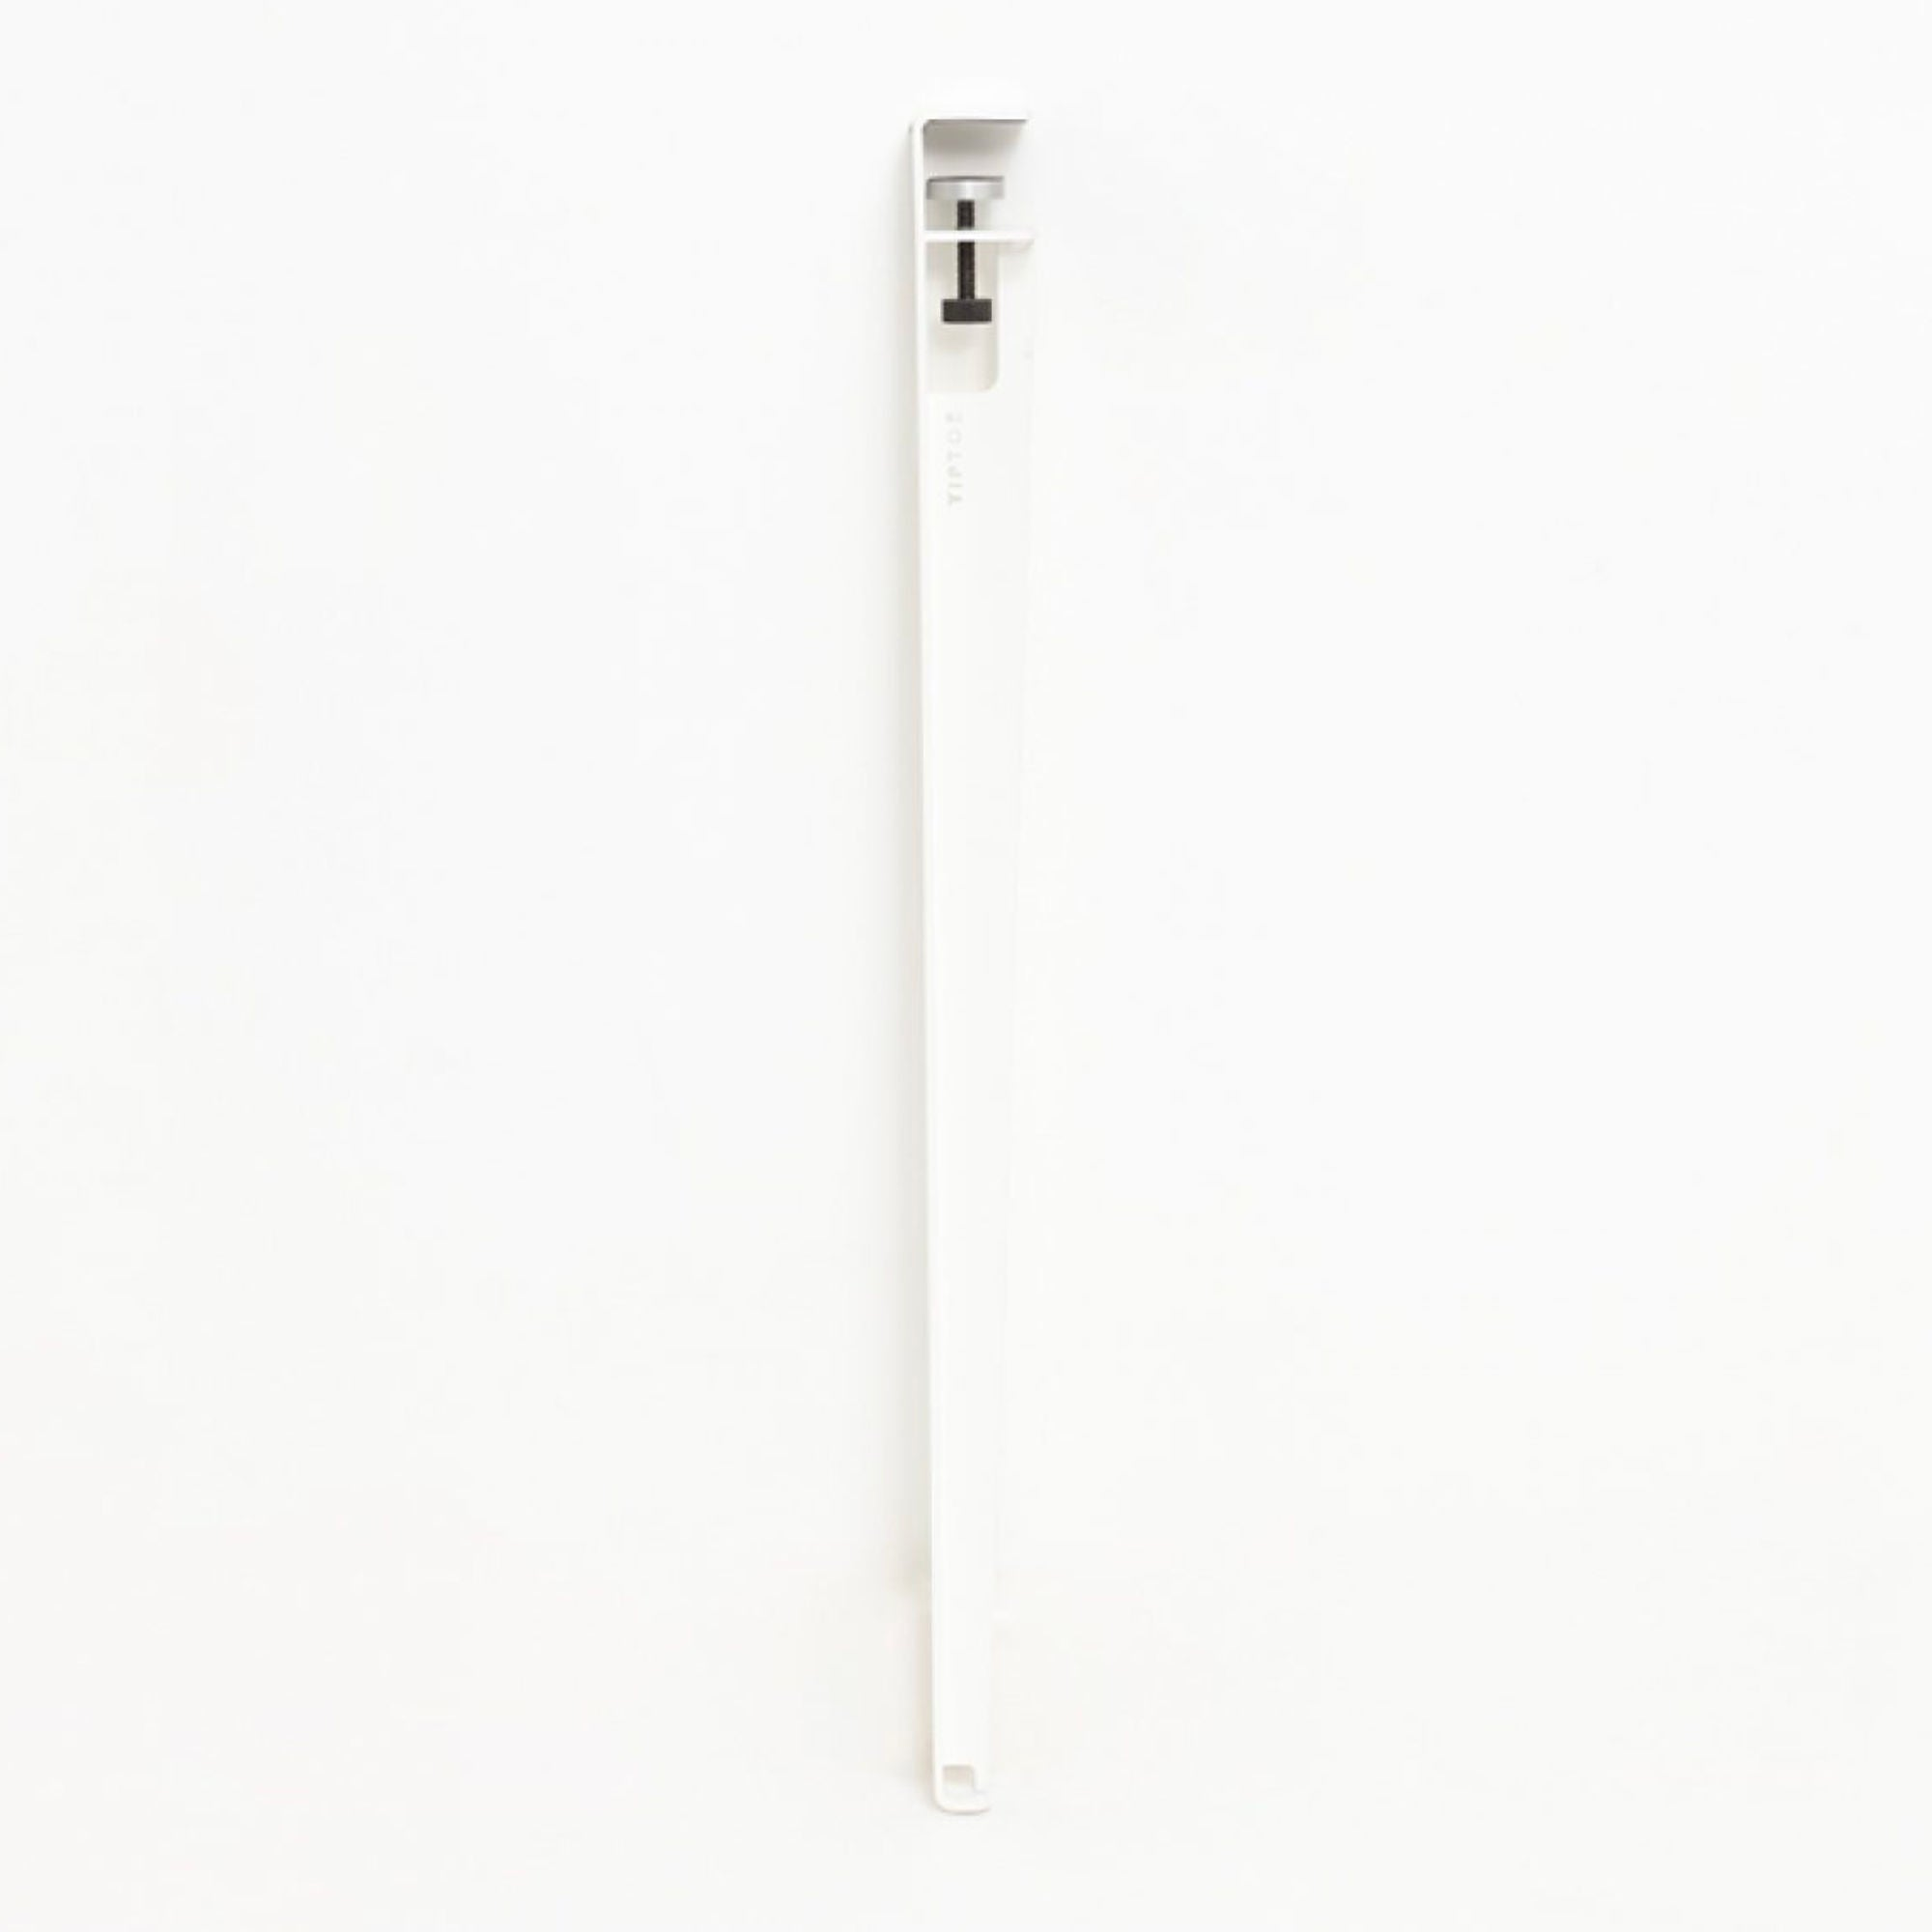 Tiptoe Pied Counter Table Leg 90cm , Cloudy White